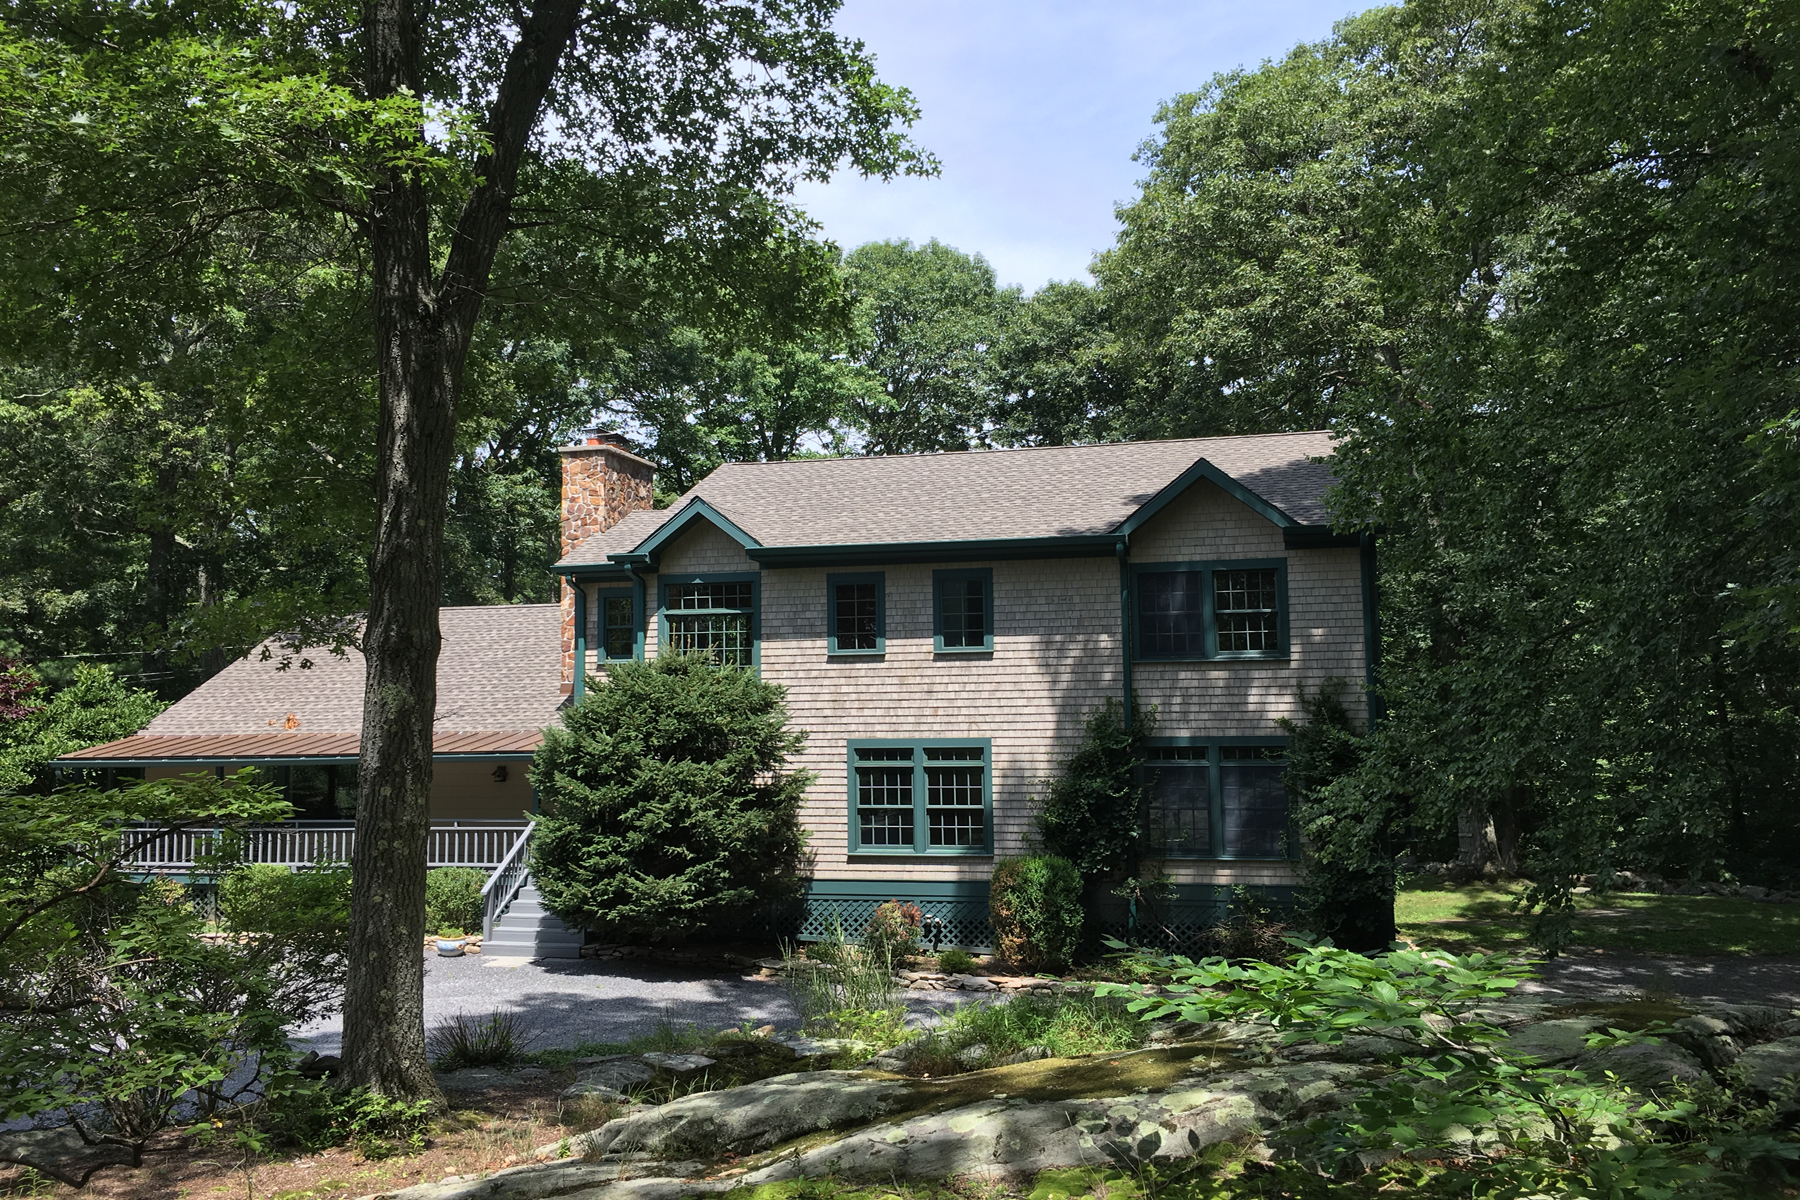 Single Family Home for Sale at Country Farmhouse 11 Kinnicut Road East Pound Ridge, New York 10576 United States